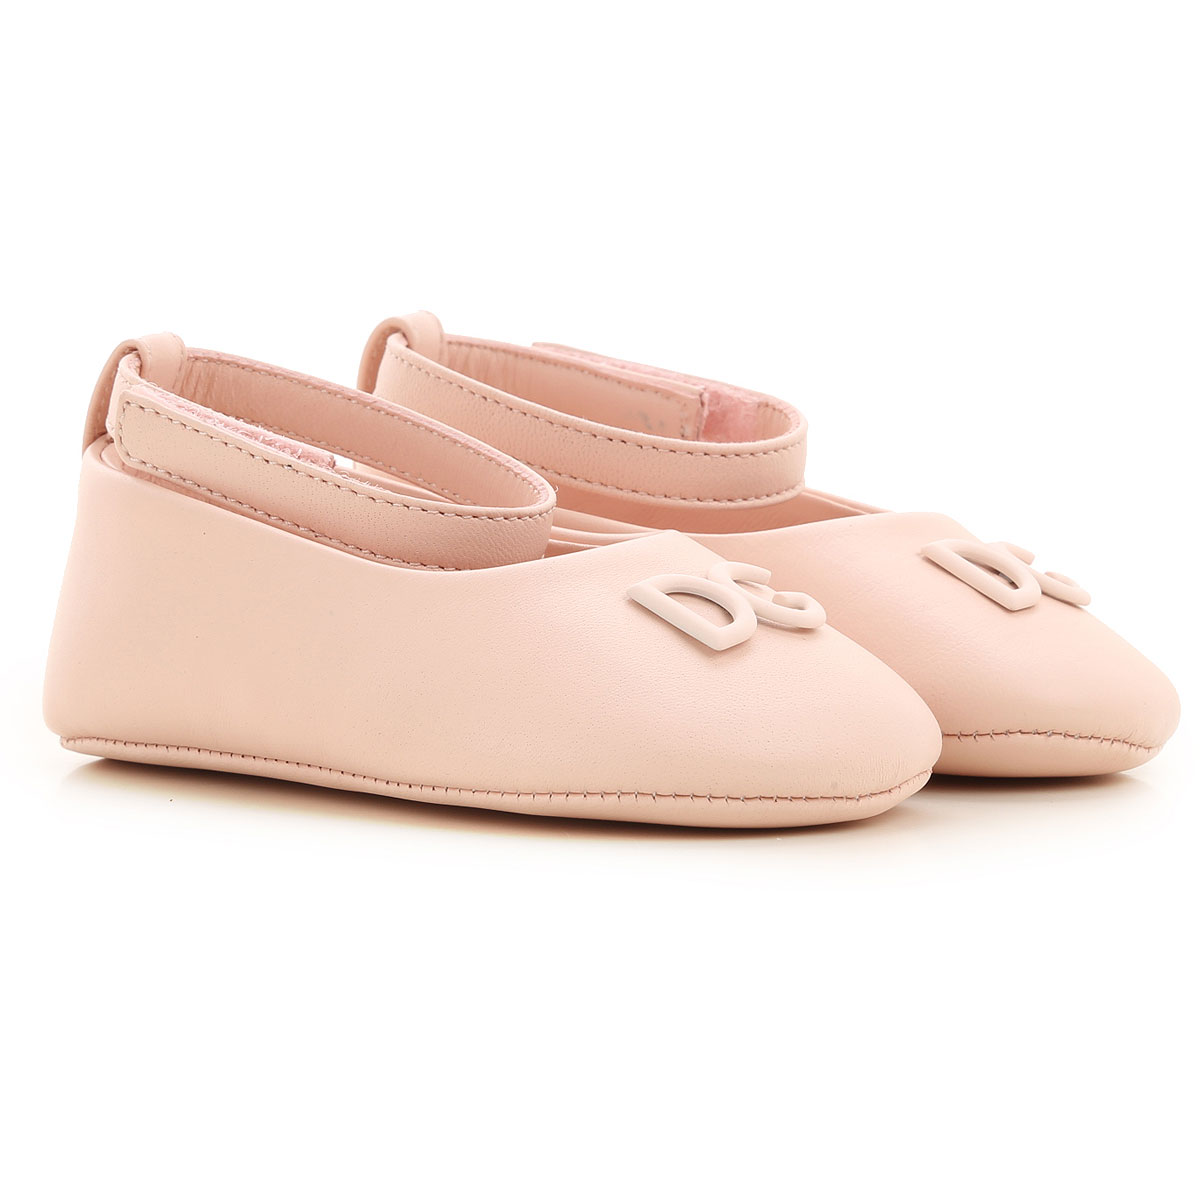 Dolce & Gabbana Baby Shoes for Girls On Sale, Pink, Lamb Leather, 2019, 2.5C 3.5C 4.5C